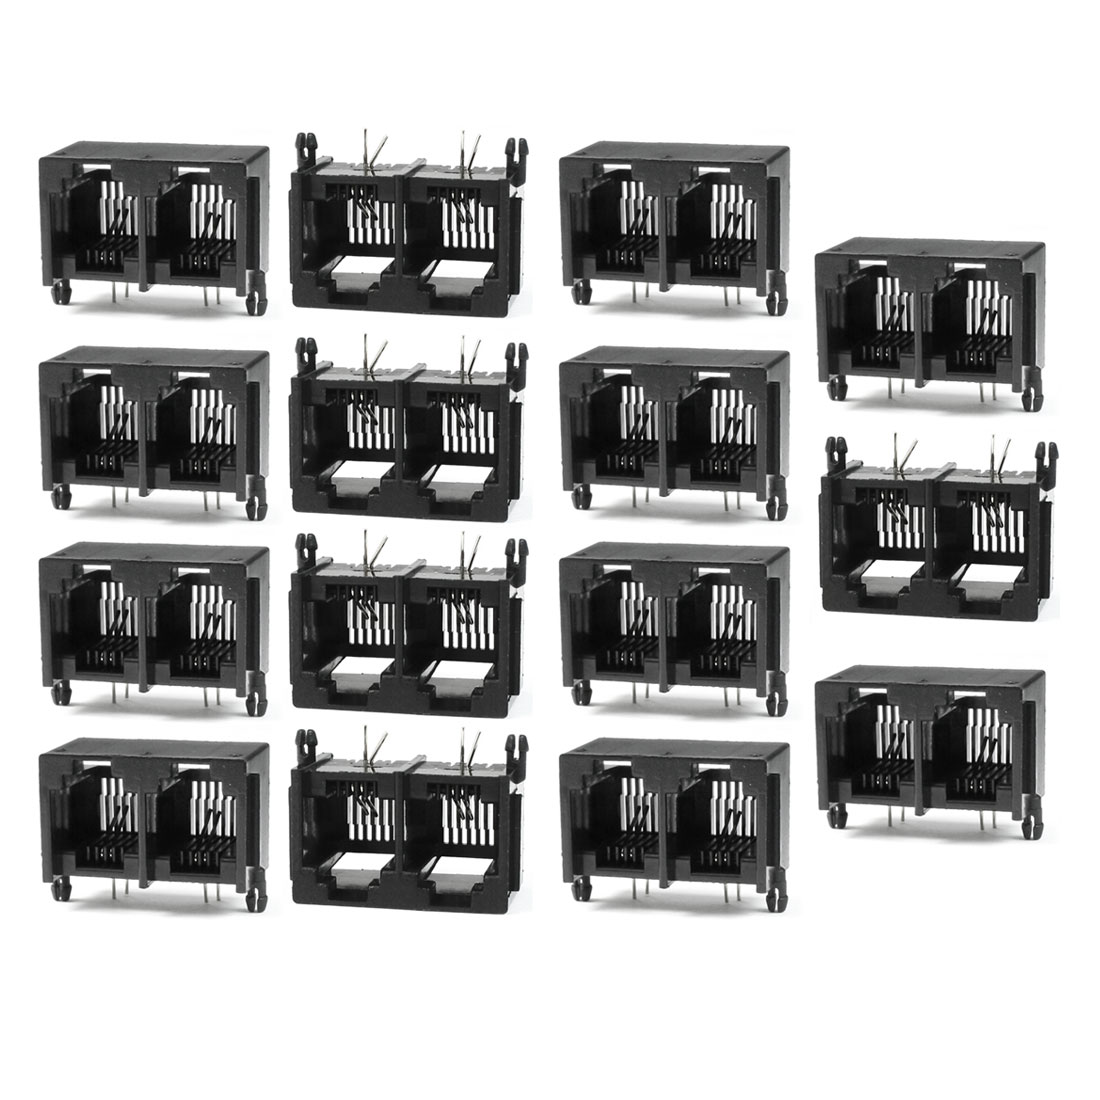 RJ11 6P2C Dual Ports Side Entry Modular Telephone Jack Connector 15 Pcs